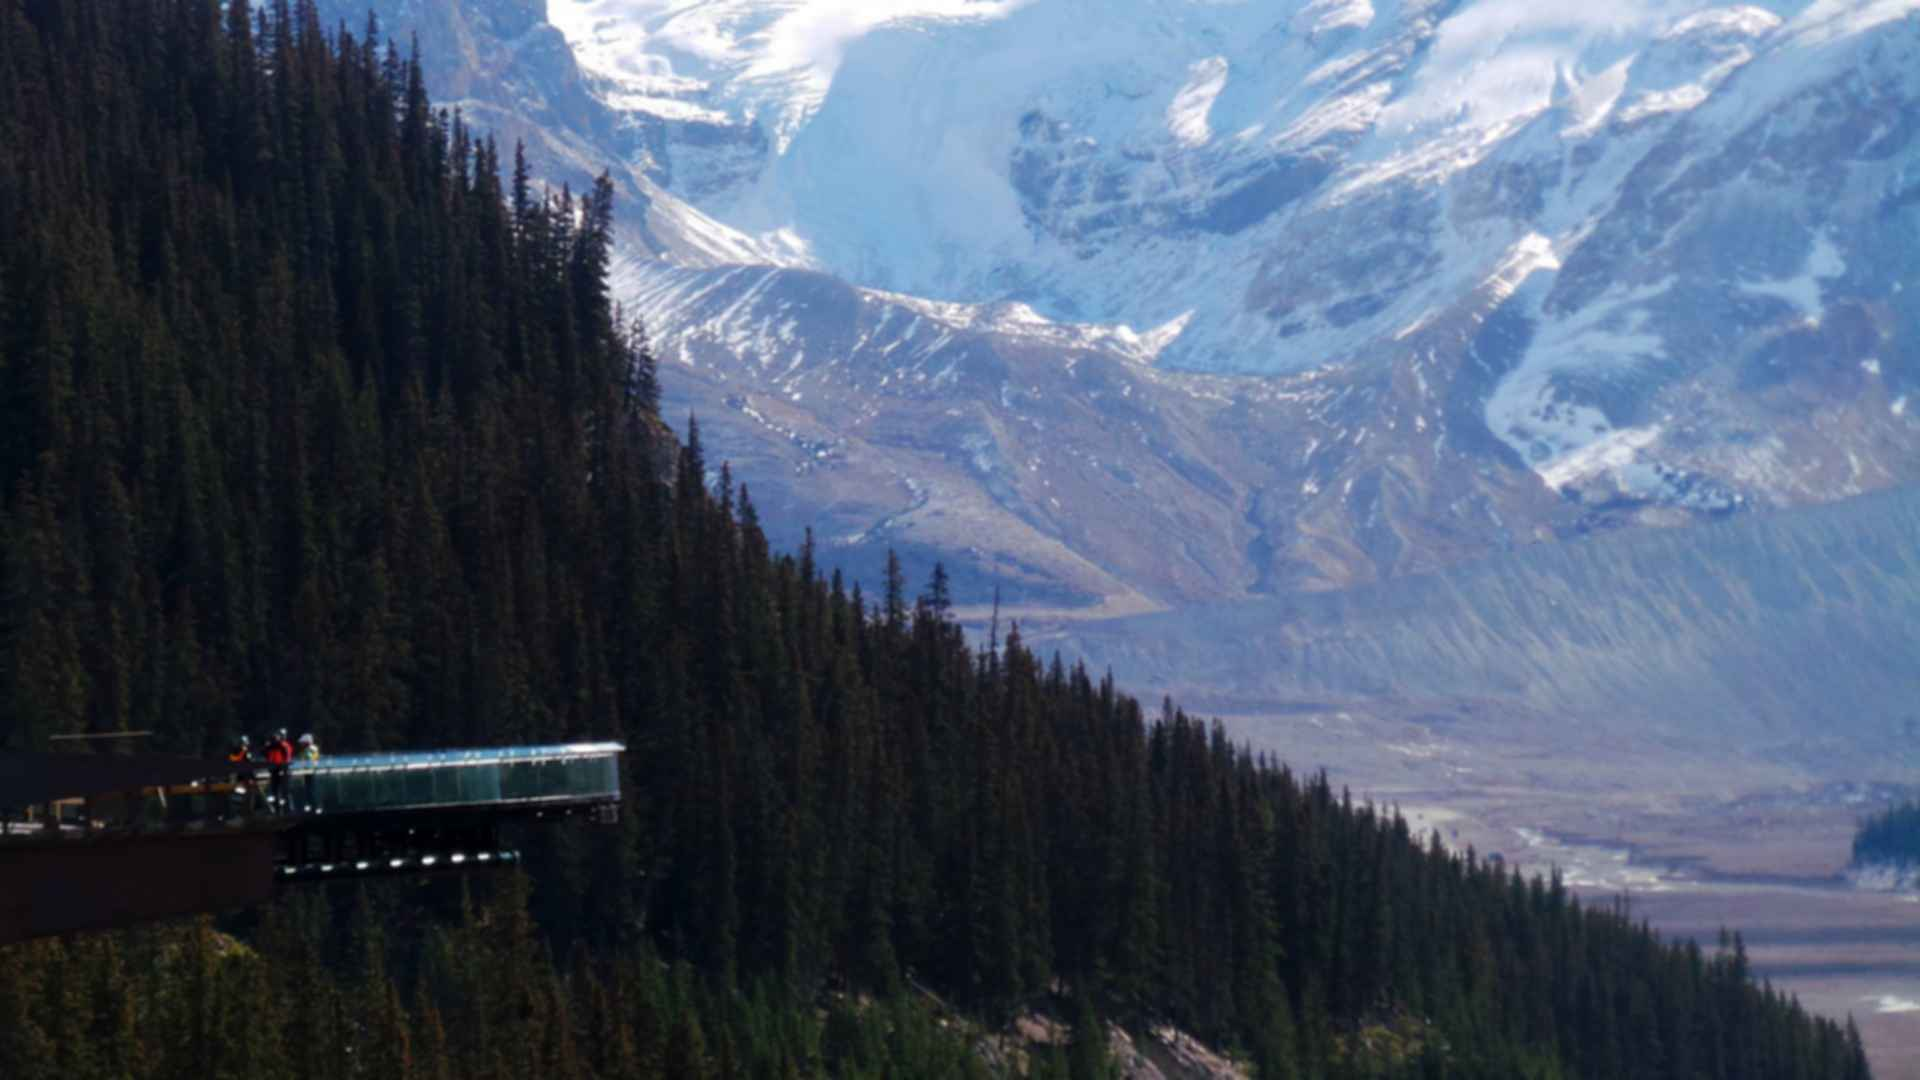 The Glacier Skywalk - View of Overhang